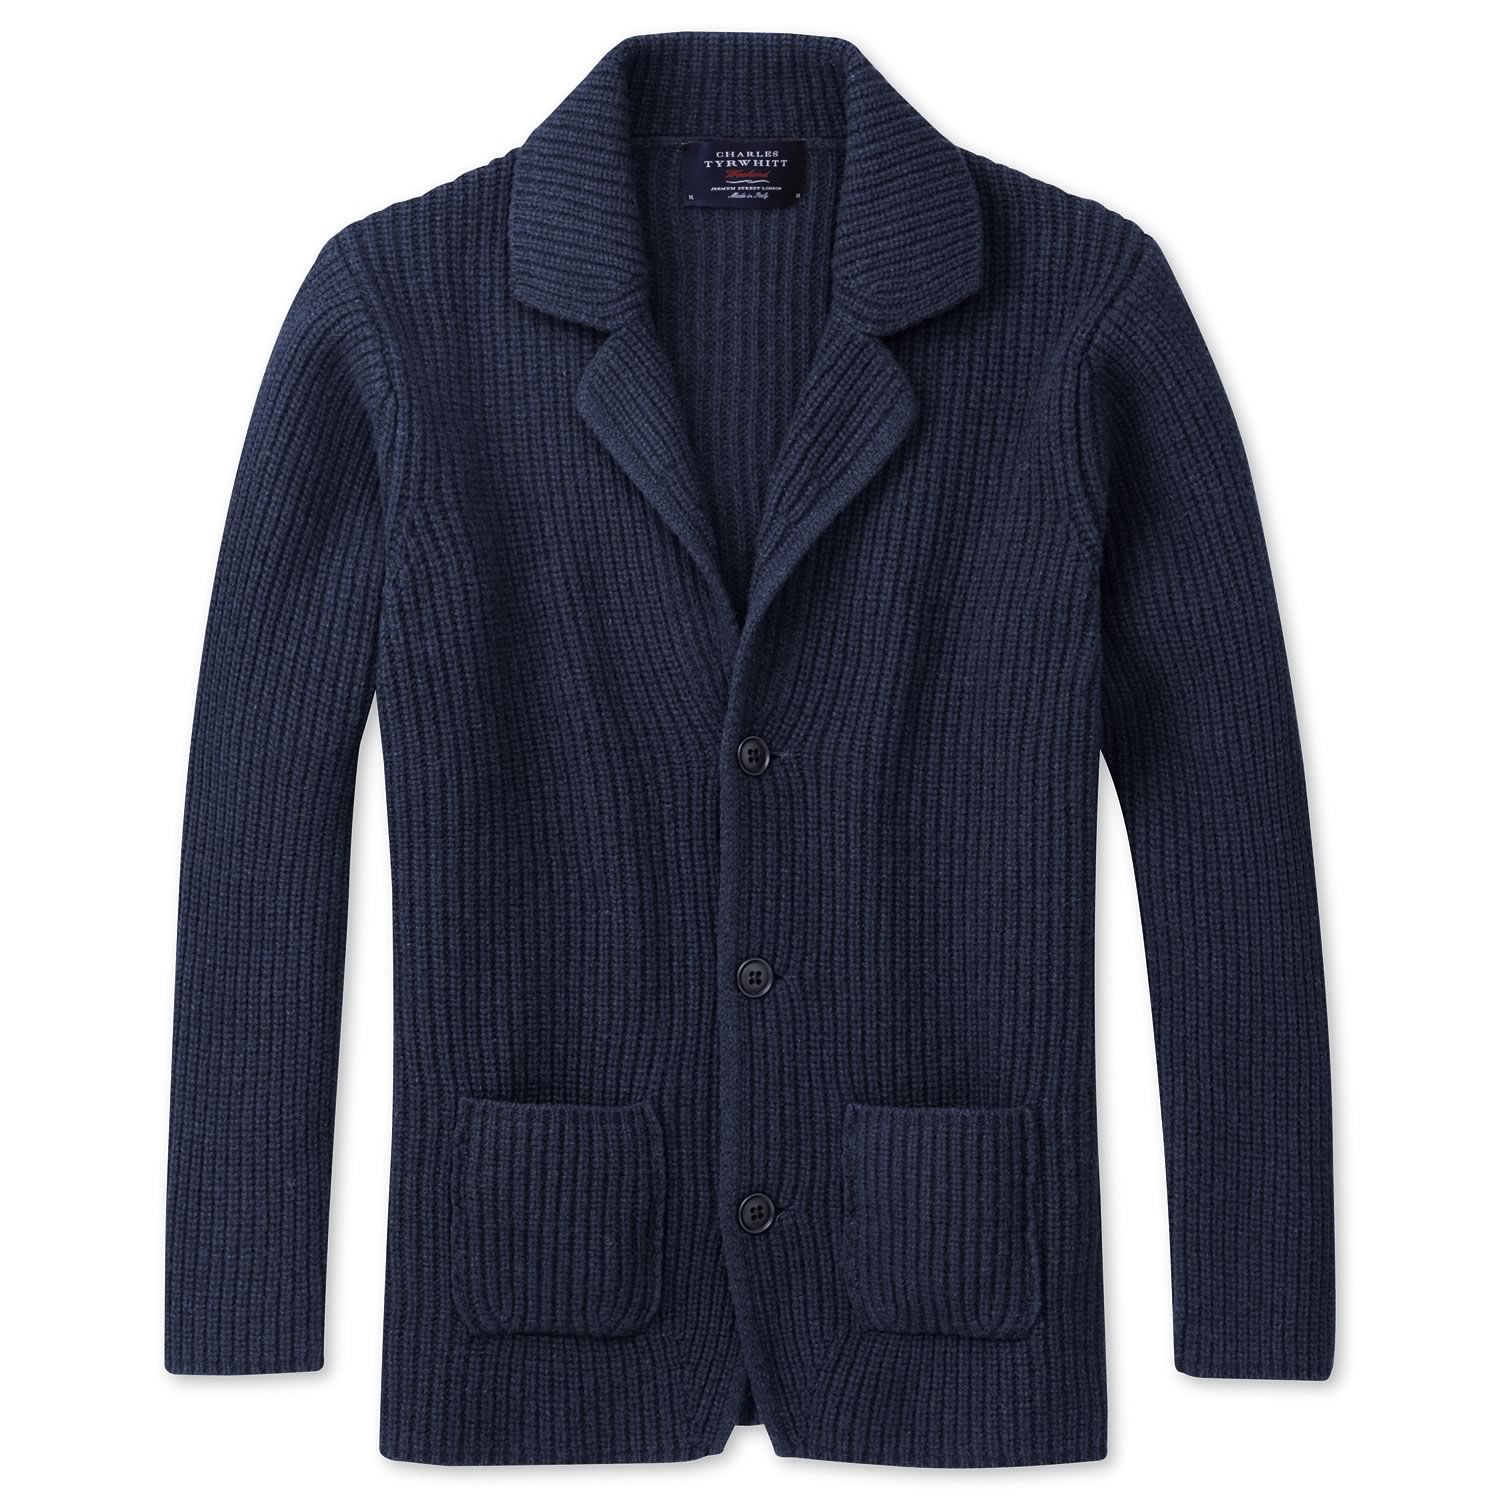 Navy marl fisherman's rib cardigan | Men's knitwear from ...